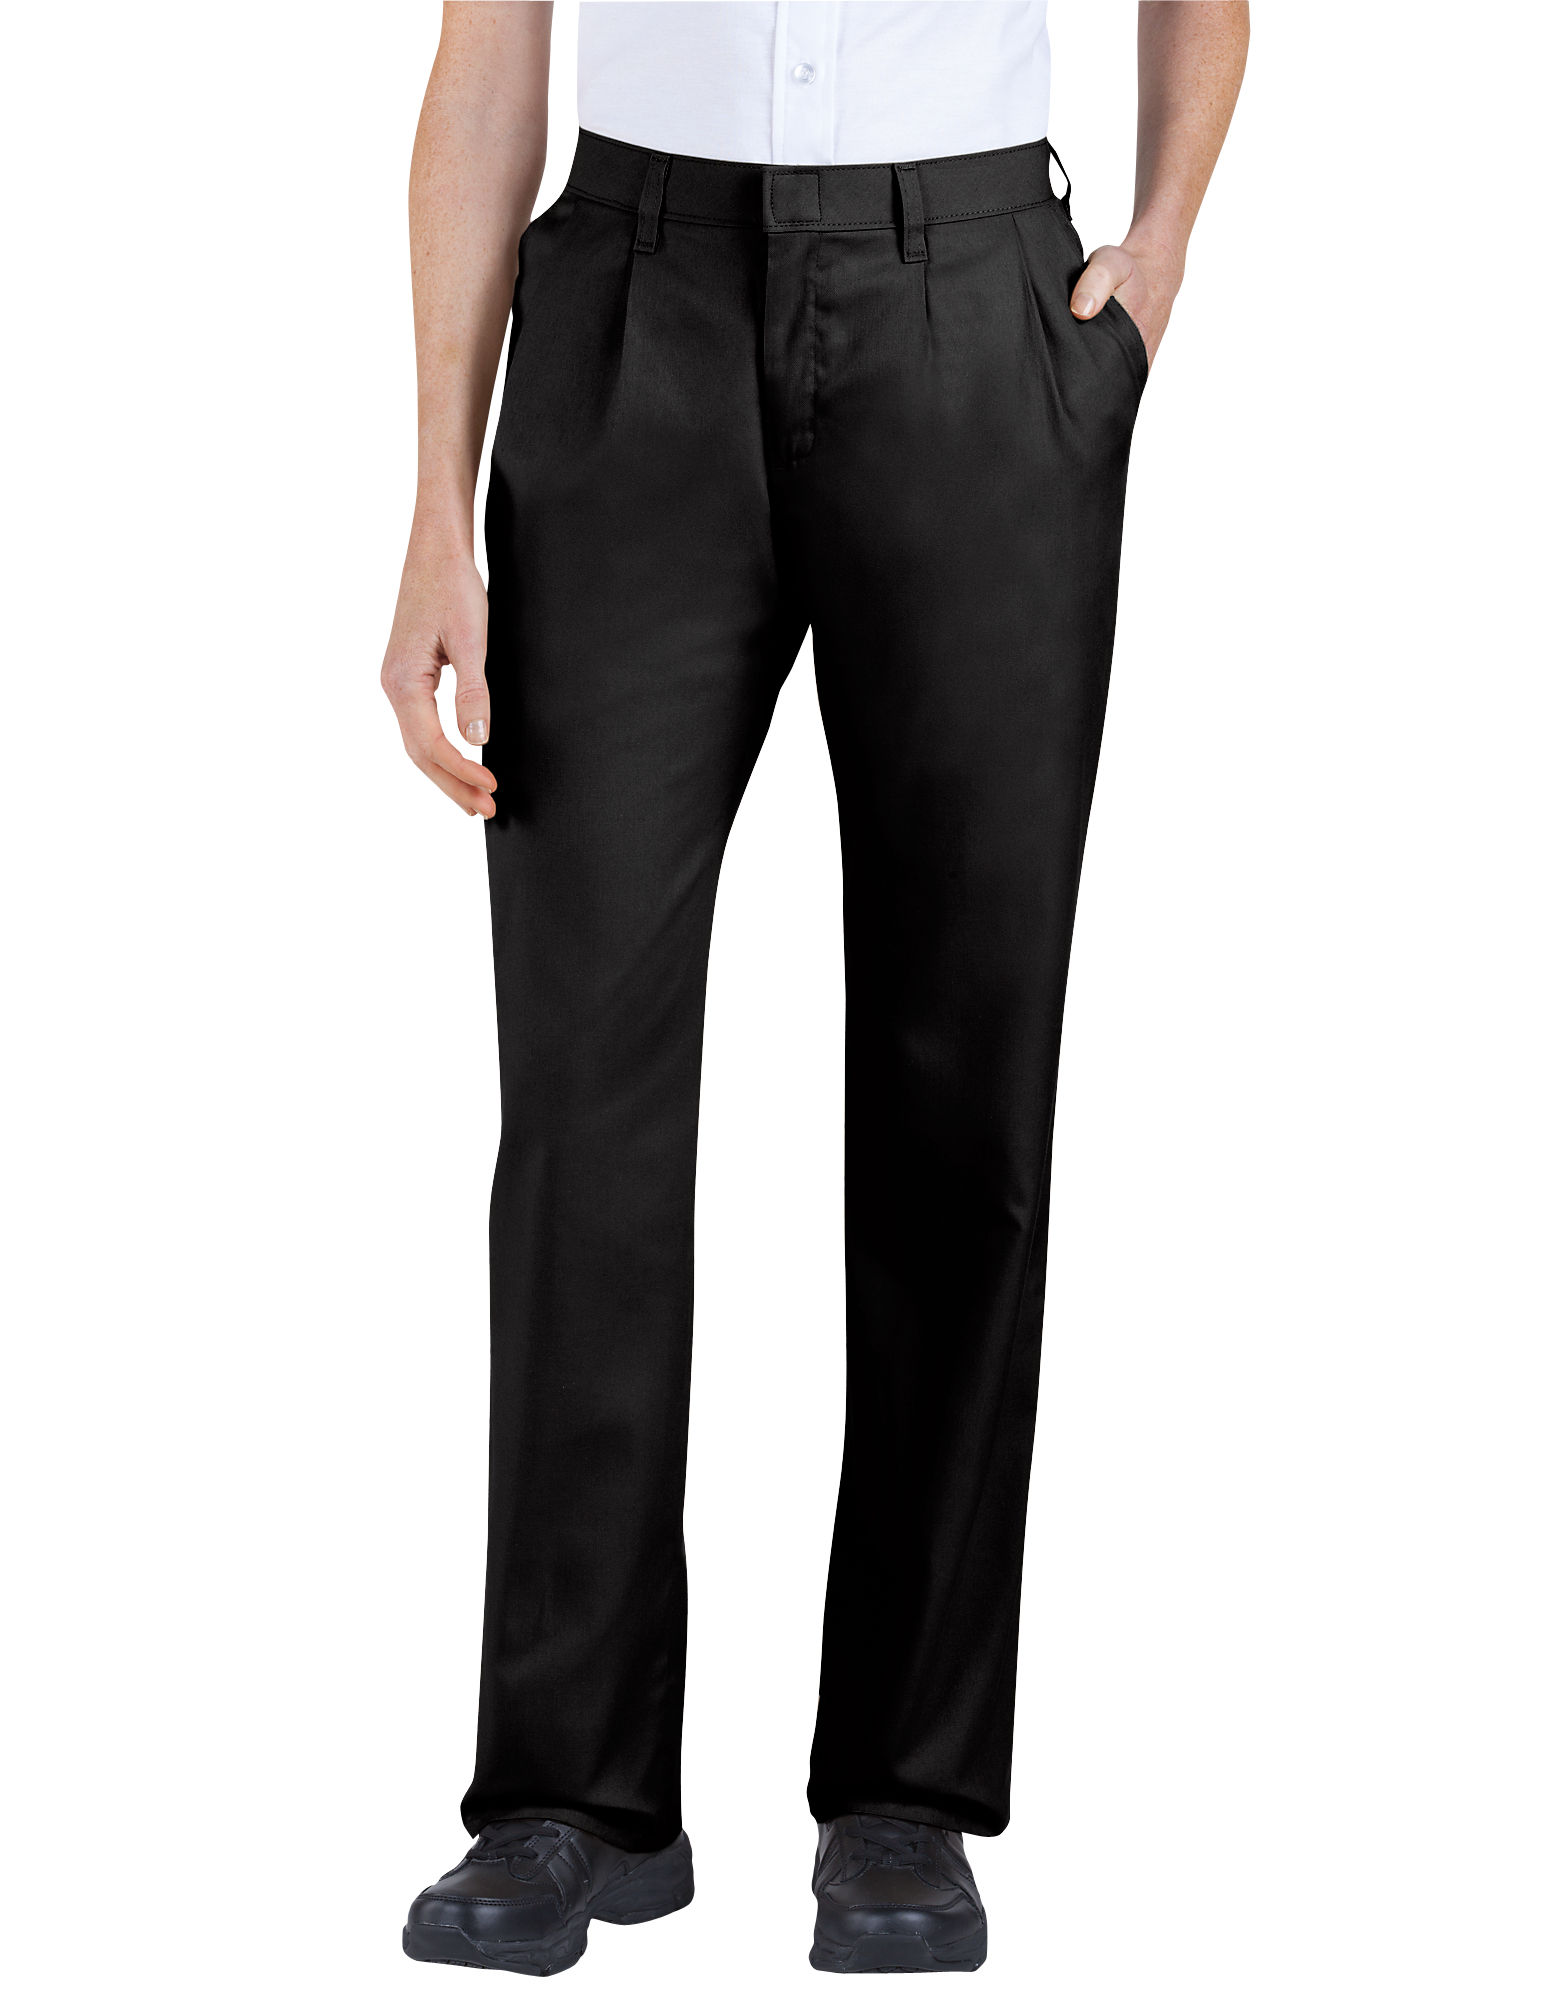 Pleated Pants Women women-s relaxed fit straight leg pleated front pants - black ... OFUGKNX